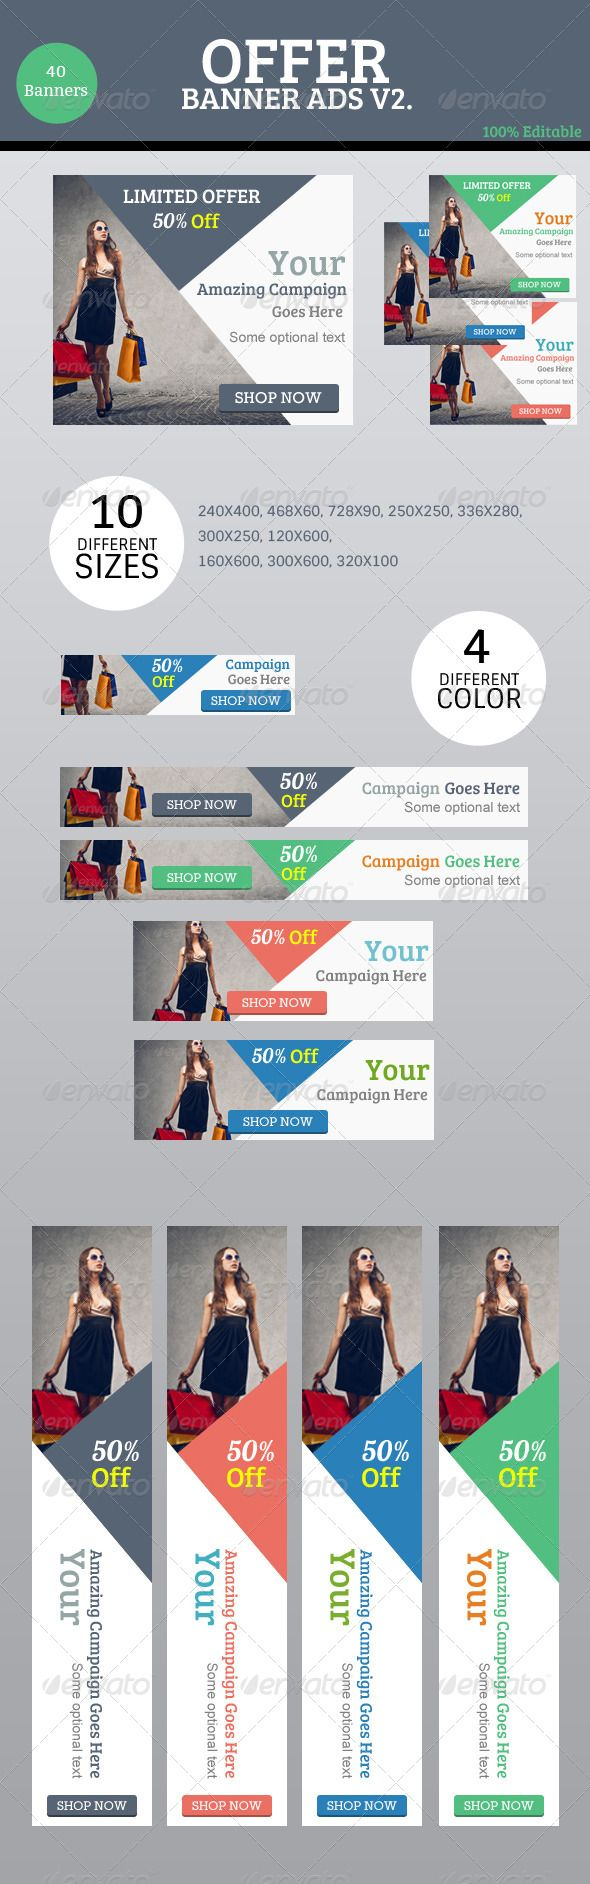 10 Best Creative Web Banners Images On Pinterest Banner Template